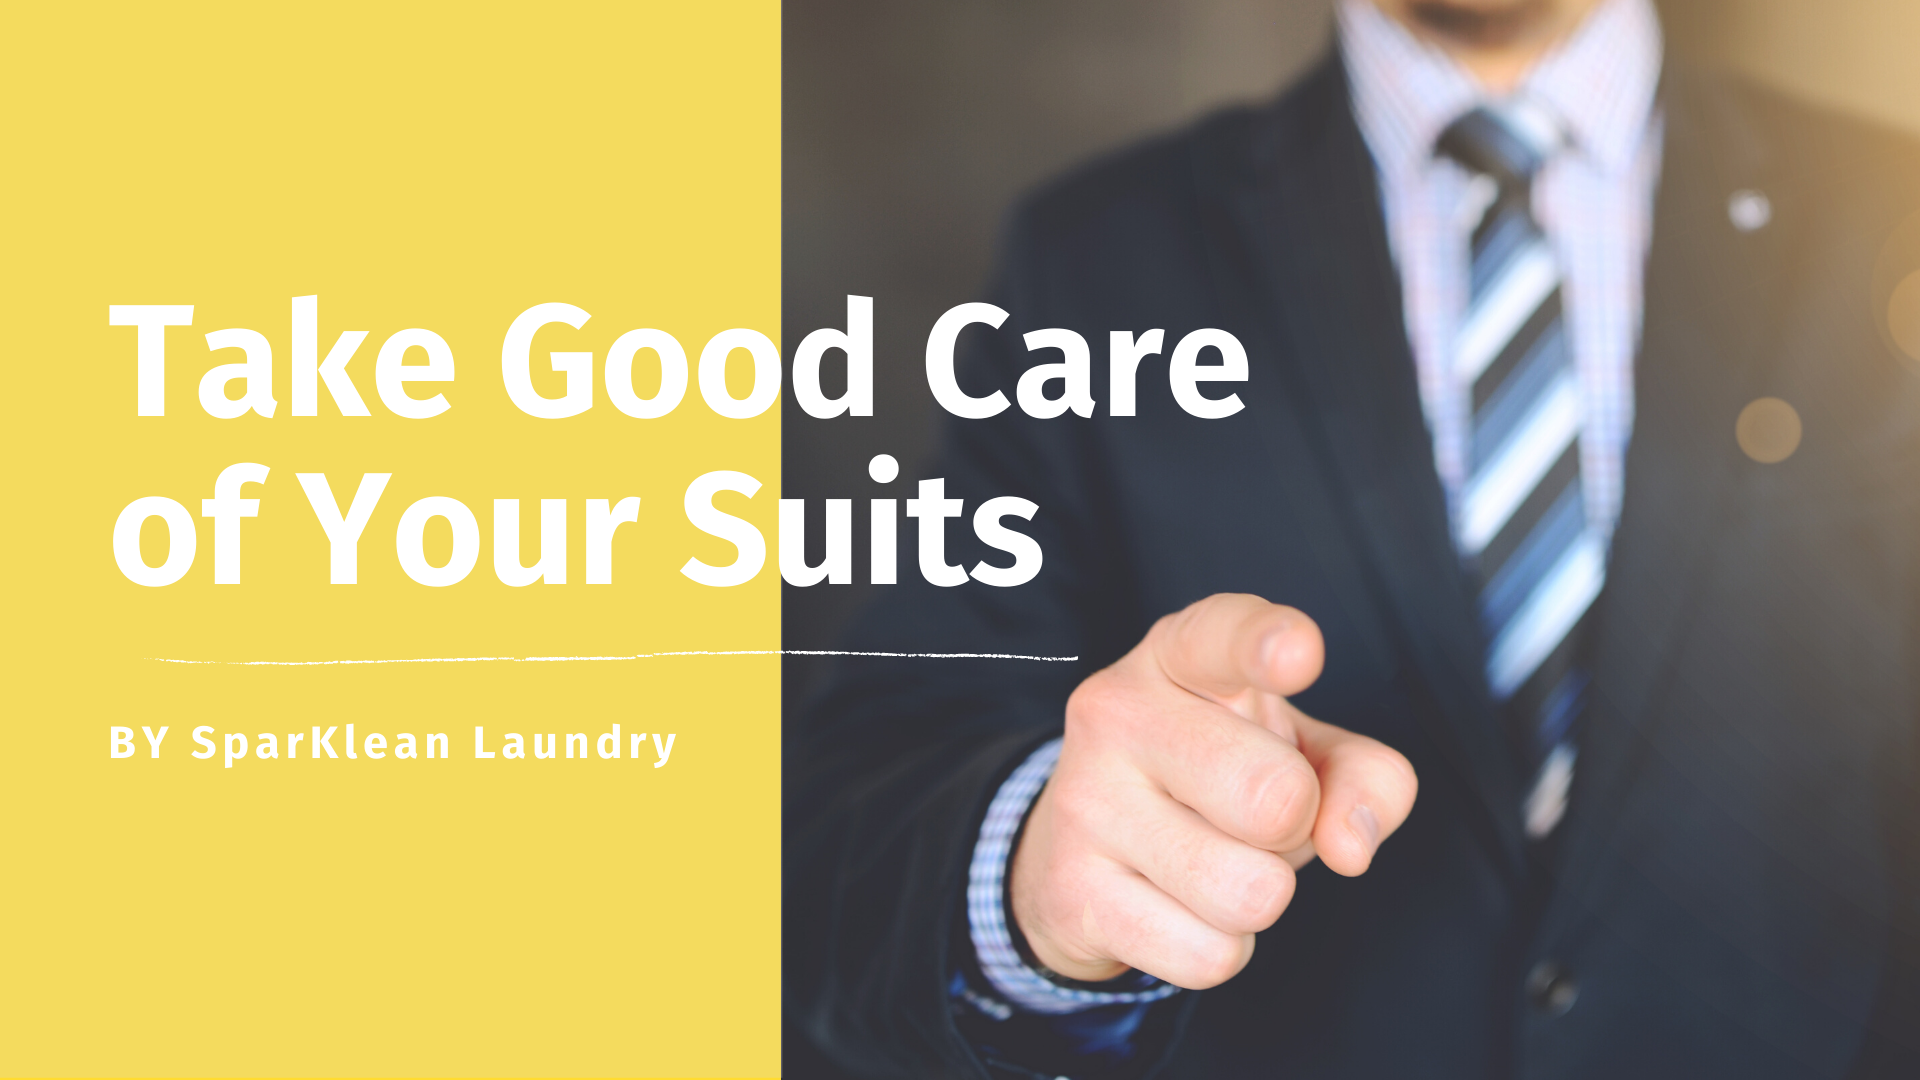 Take good care of your suits